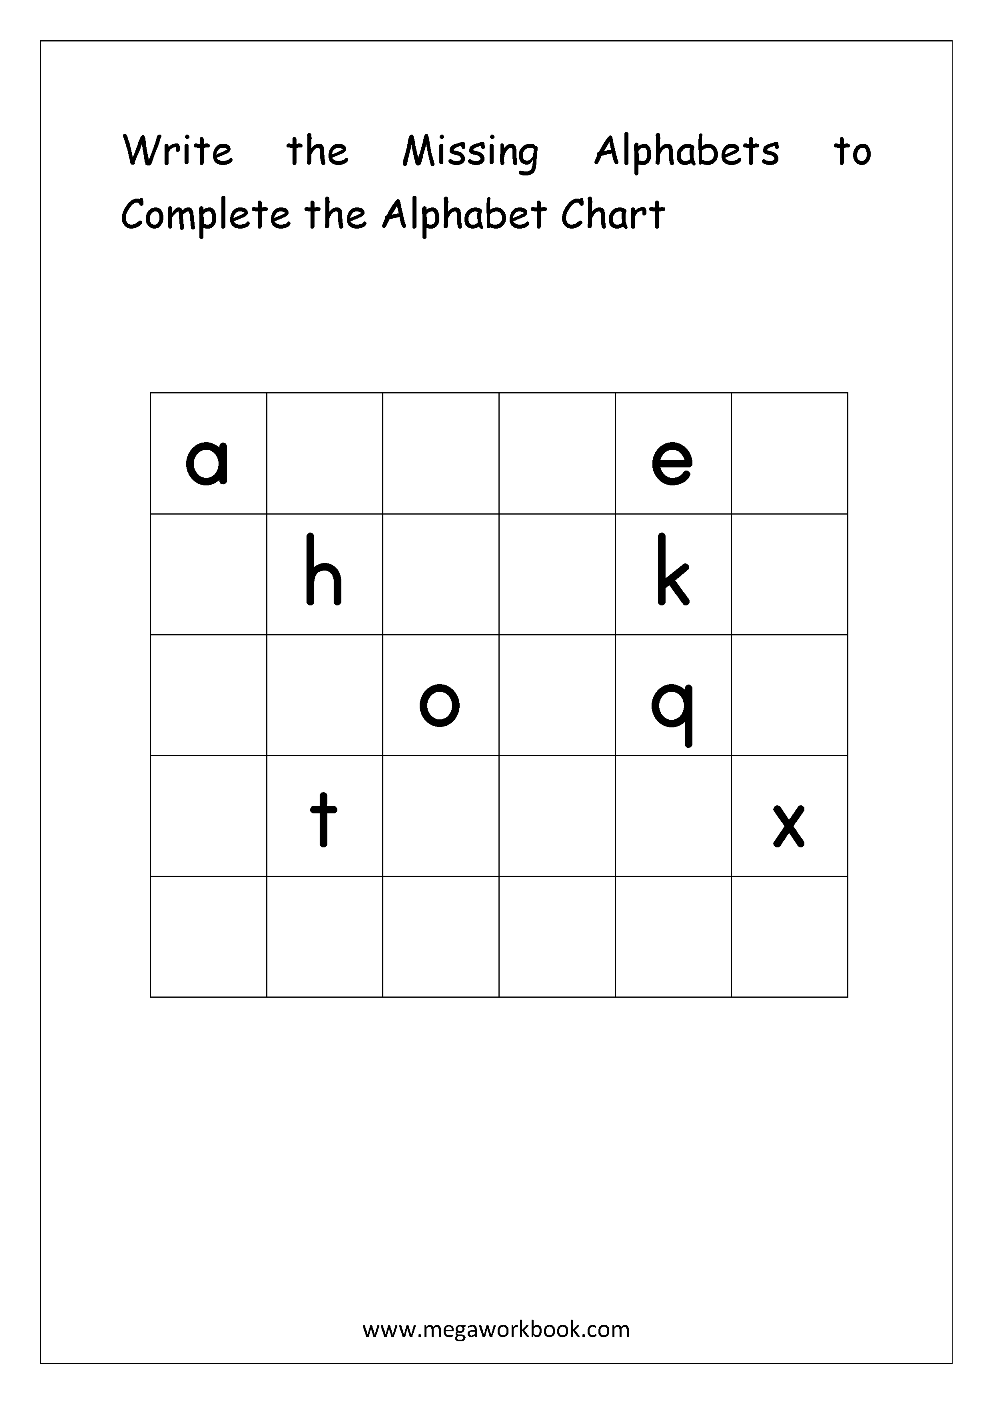 Free English Worksheets Alphabetical Sequence Alphabetical Order M Alphabet Worksheets Free Alphabet Writing Practice English Worksheets For Kindergarten [ 1403 x 992 Pixel ]